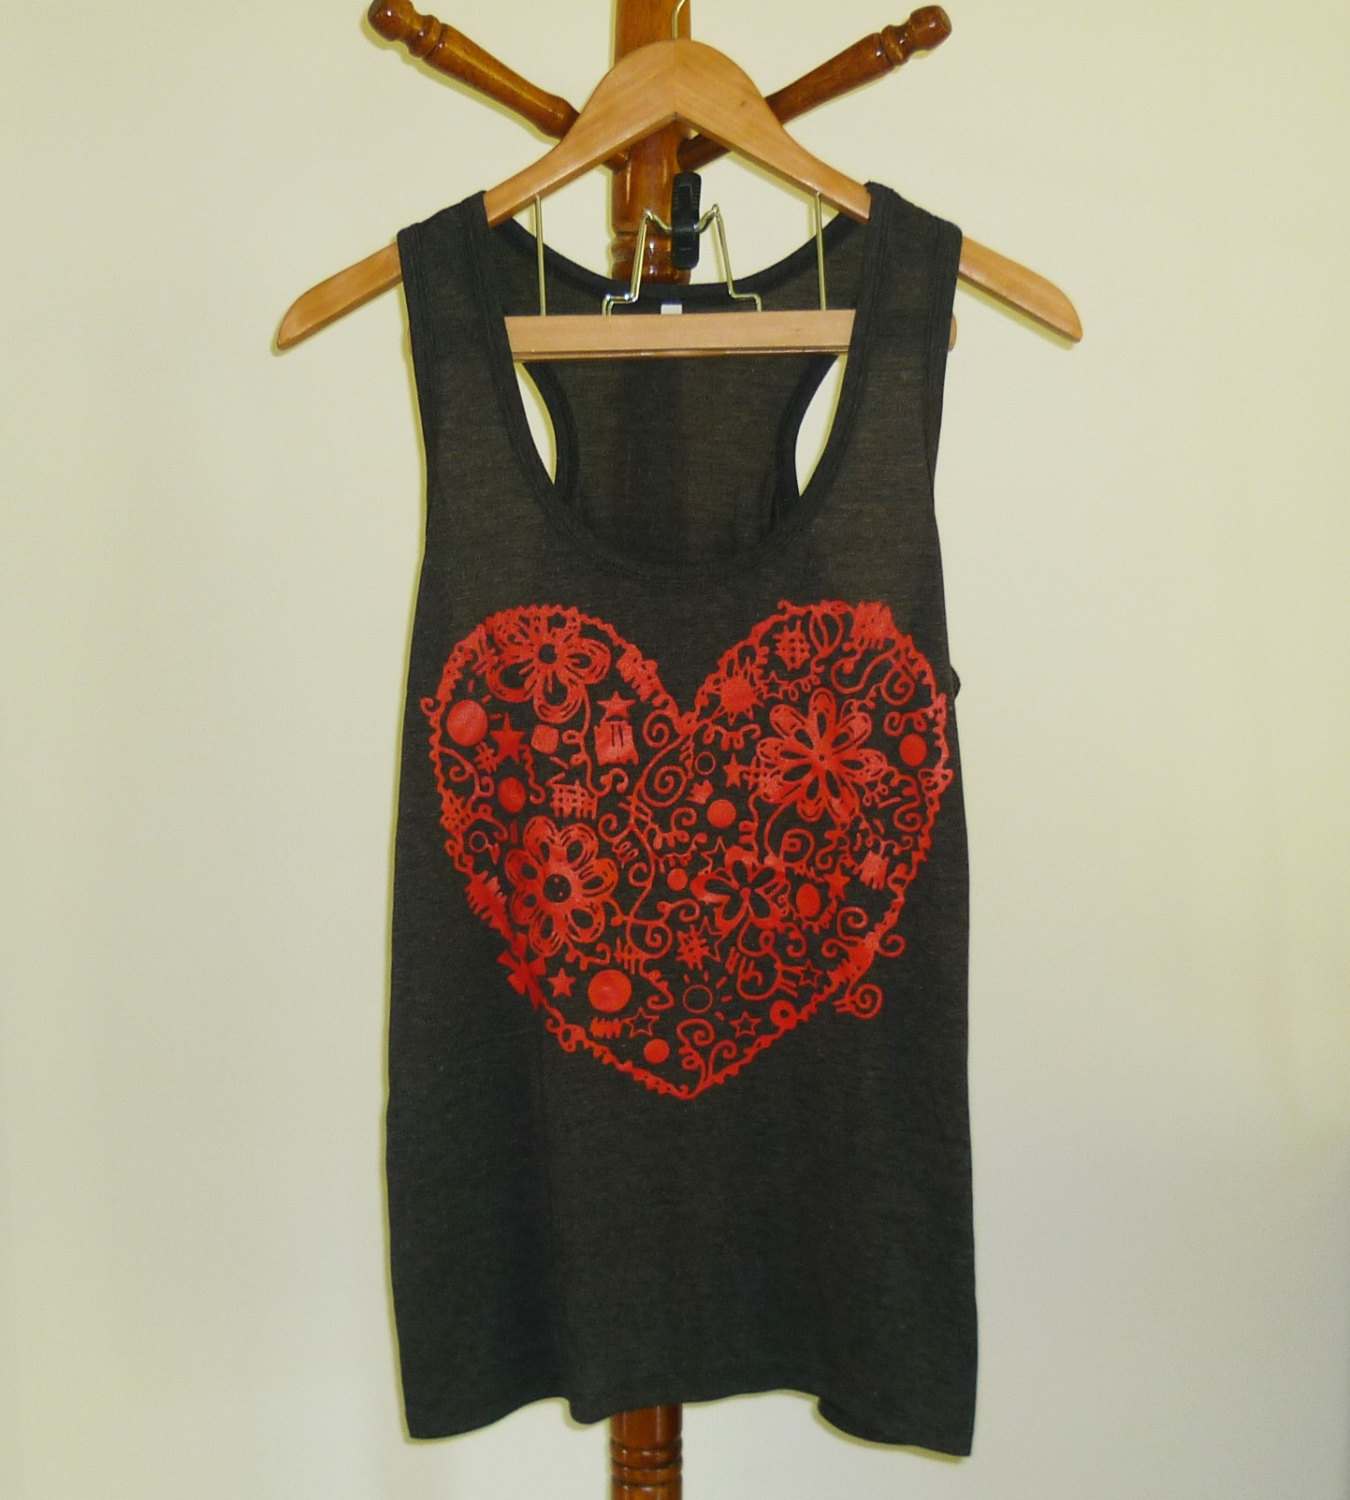 Heart tank top flower graphic shirt size s m l xl xxl light black soft t shirt sleeveless top valentine's day gift ideas summer clothing